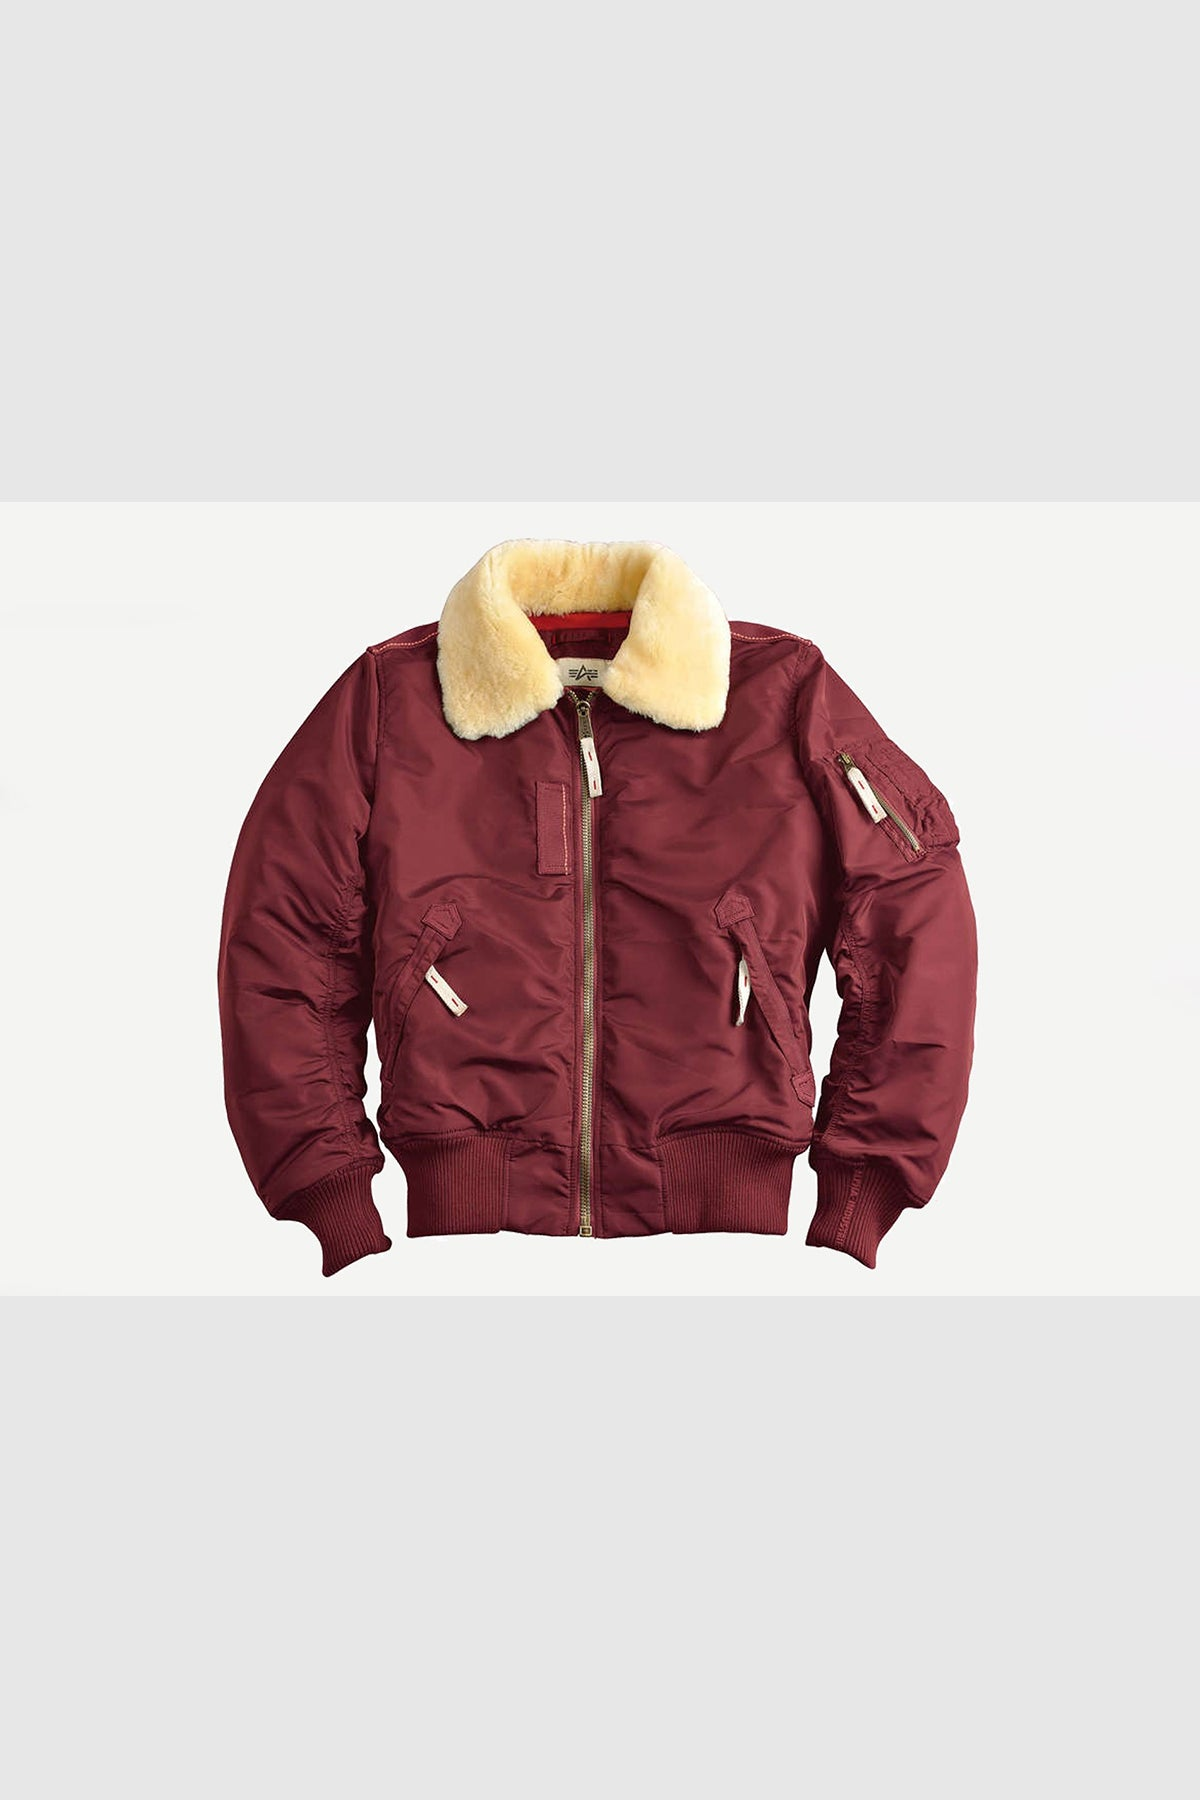 Alpha Industries - 143104 Injector III men JKT Bomber Winter Jacket (Burgundy)